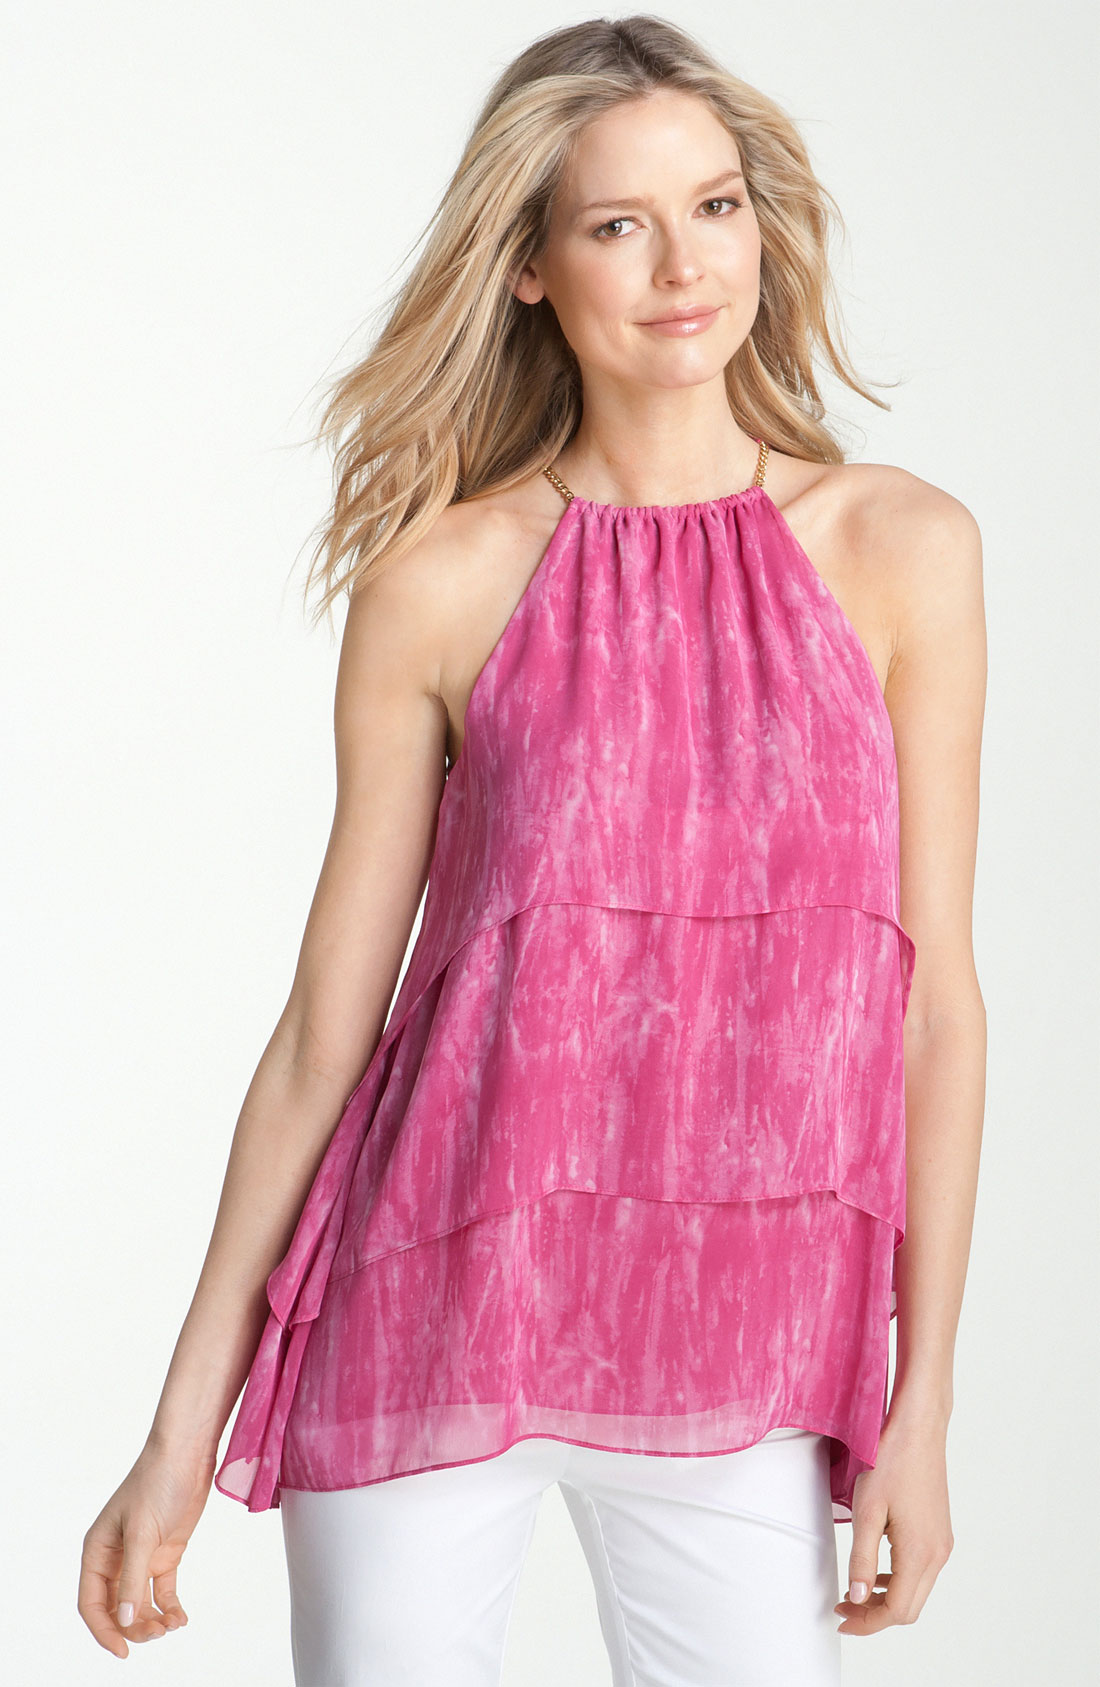 Michael michael kors Tiered Halter Blouse in Pink